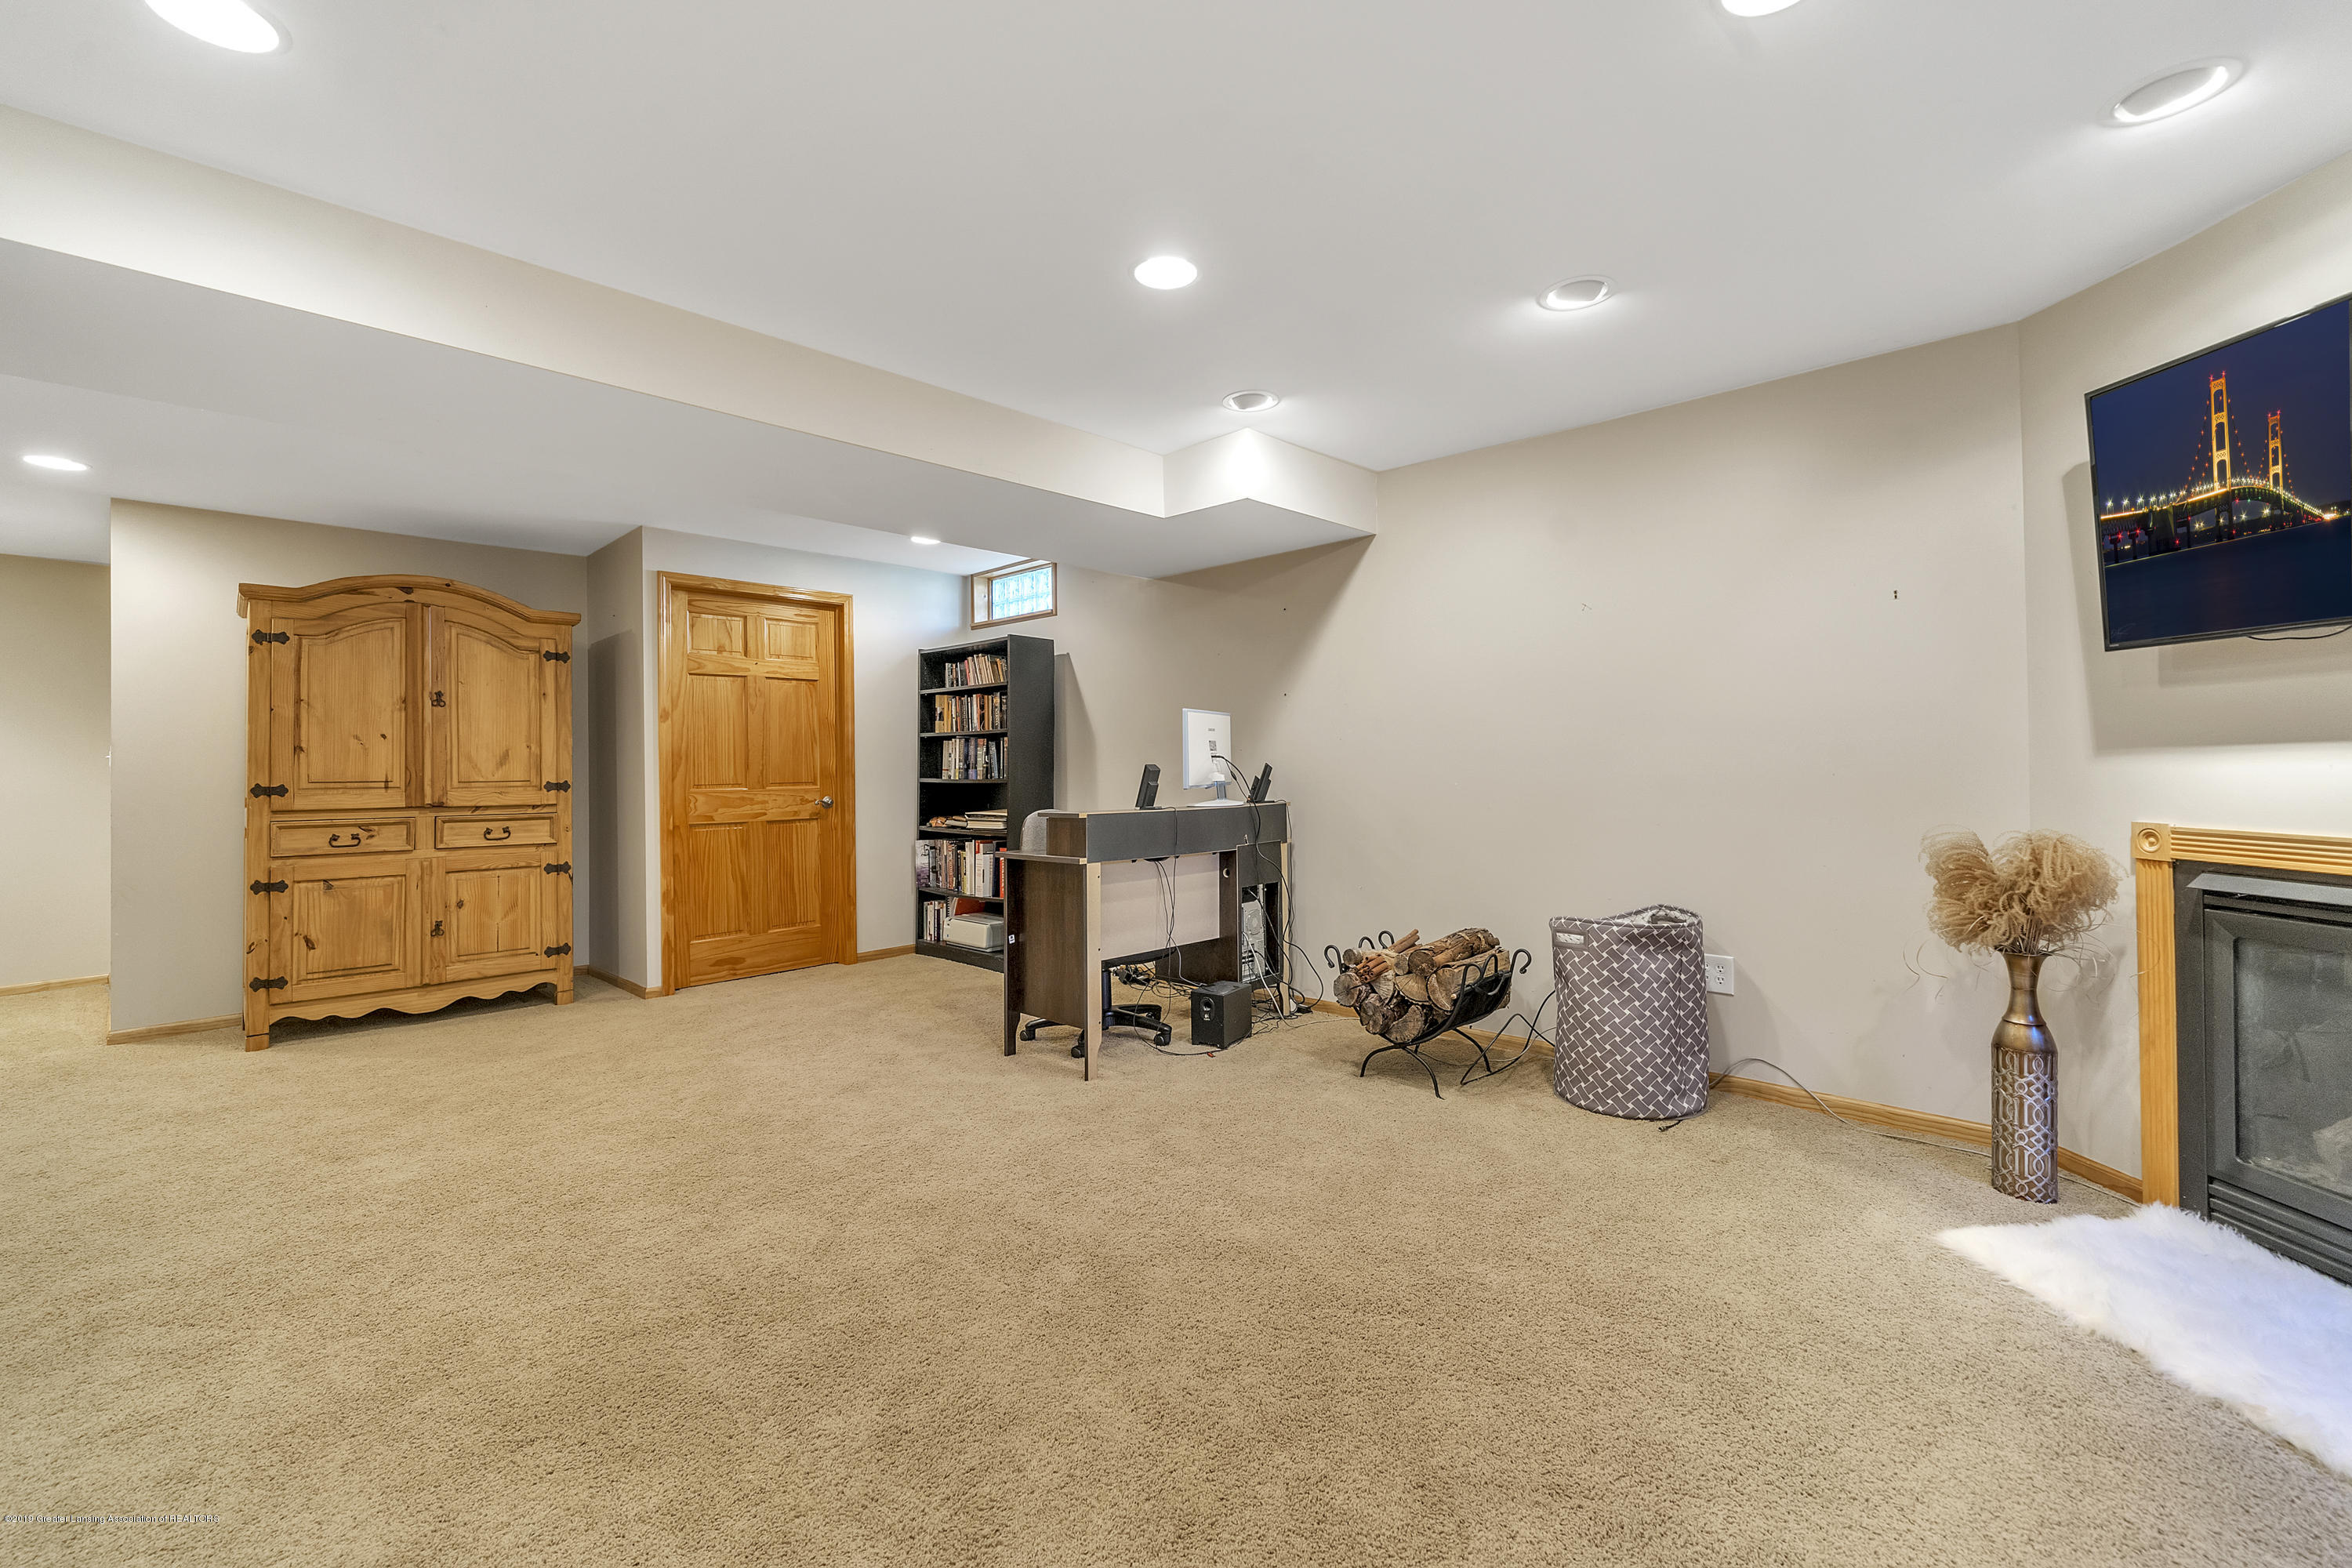 1258 Sumac Ln - 1258-Sumac-WindowStill-Real-Estate-Photo - 24